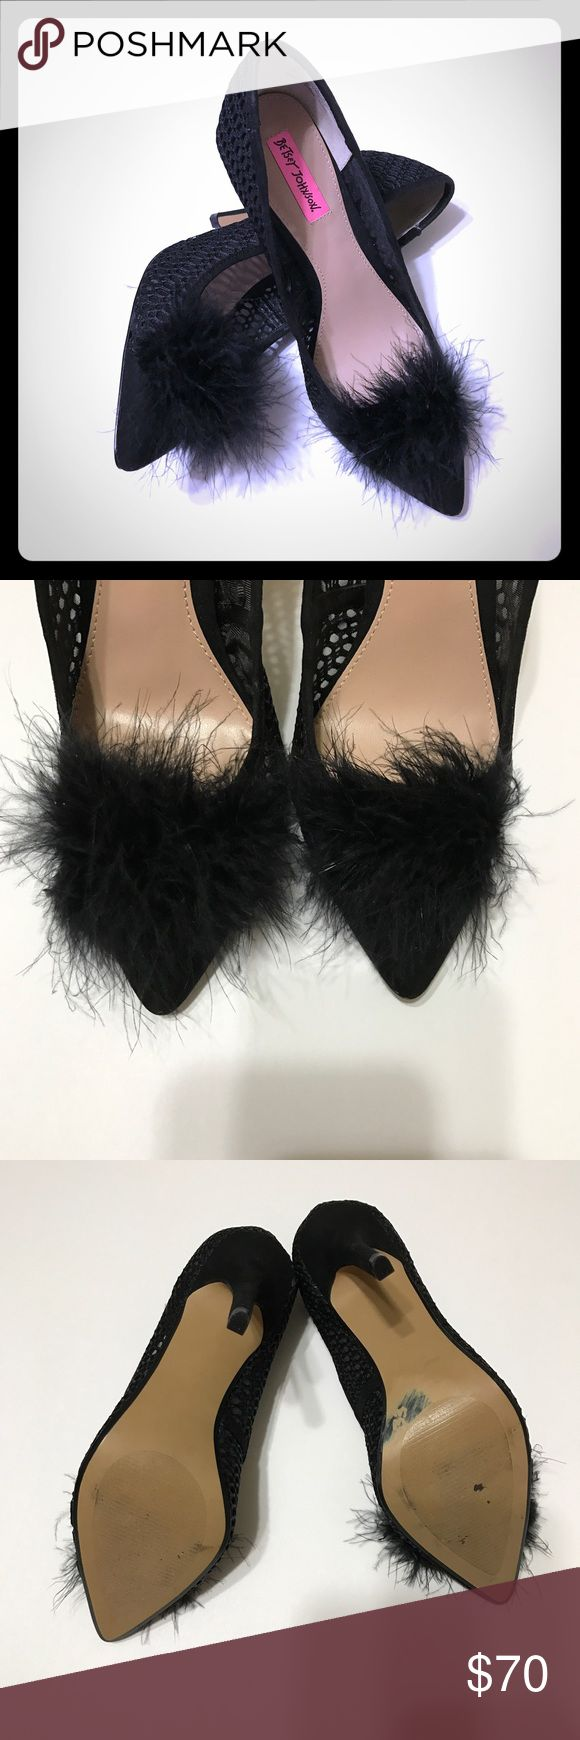 "BETSEY JOHNSON Black Feather Pumps NWOB These BETSEY JOHNSON Black Feather Pumps are too sexy. Has a 4.5"" heel, feather Pom and Peekaboo lattice sides.  New never worn. Only in store wear on heel. NWOB Betsey Johnson Shoes Heels"